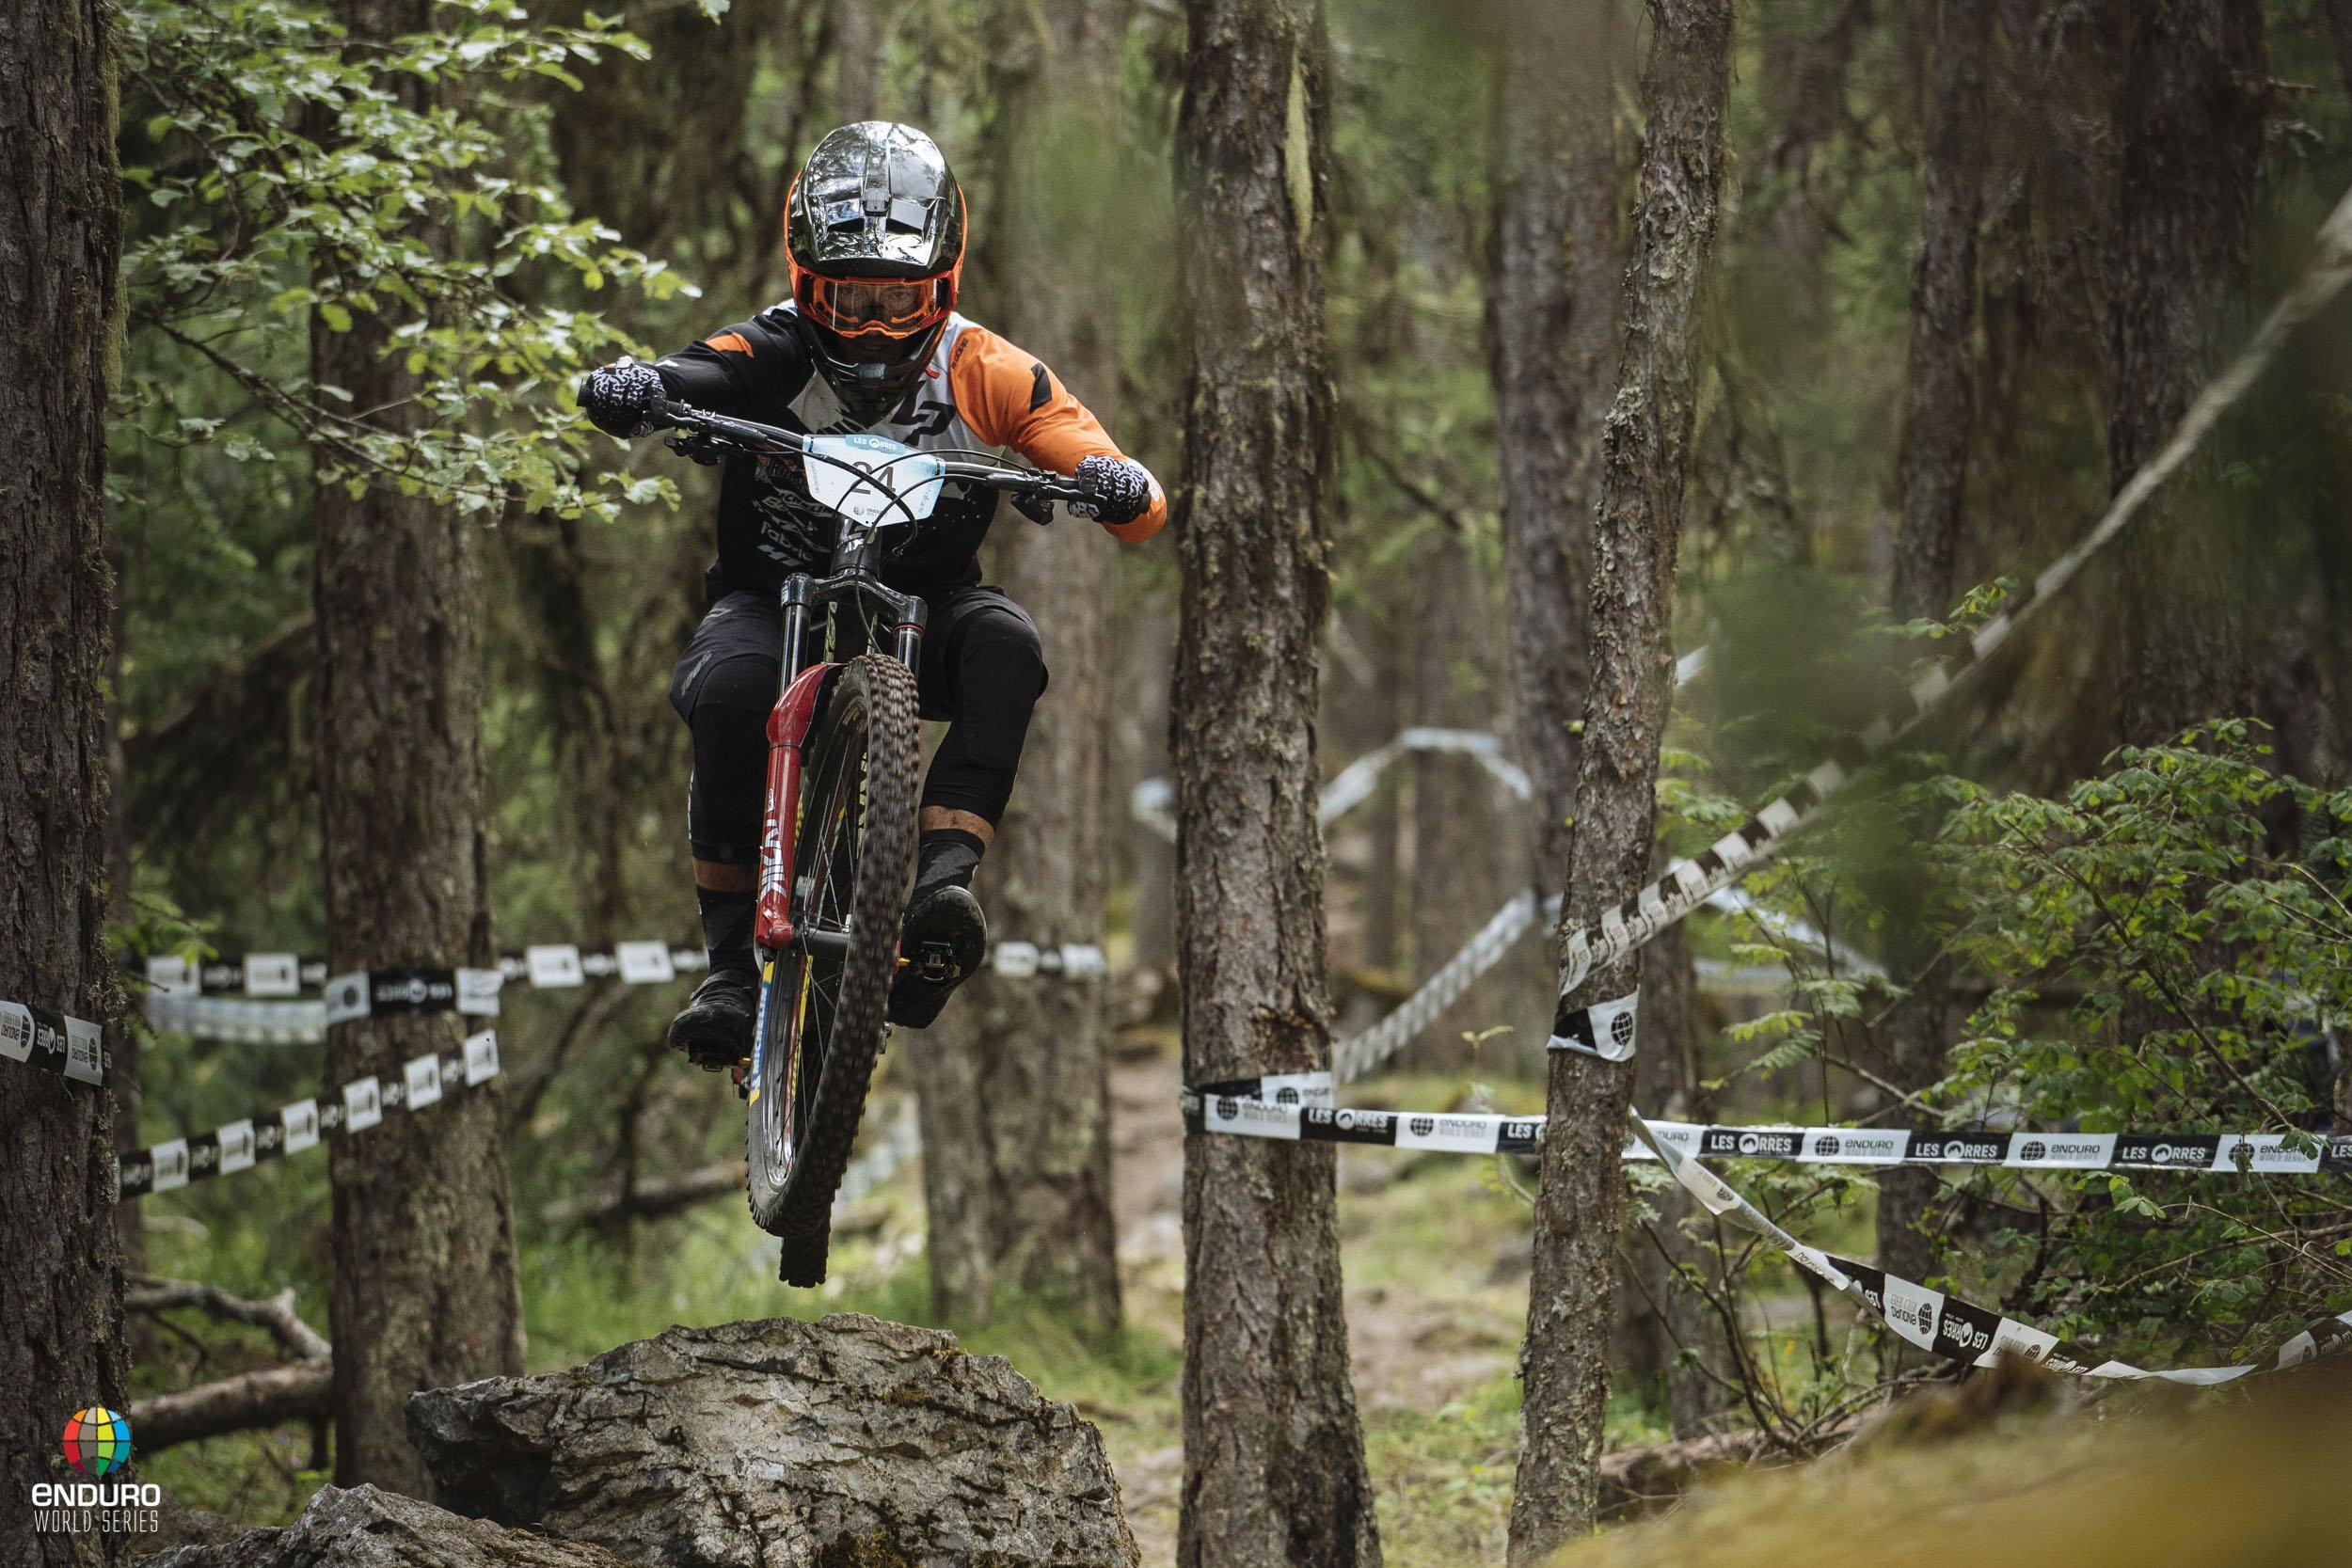 Adrien Dailly day one leader at the Les Orres EWS